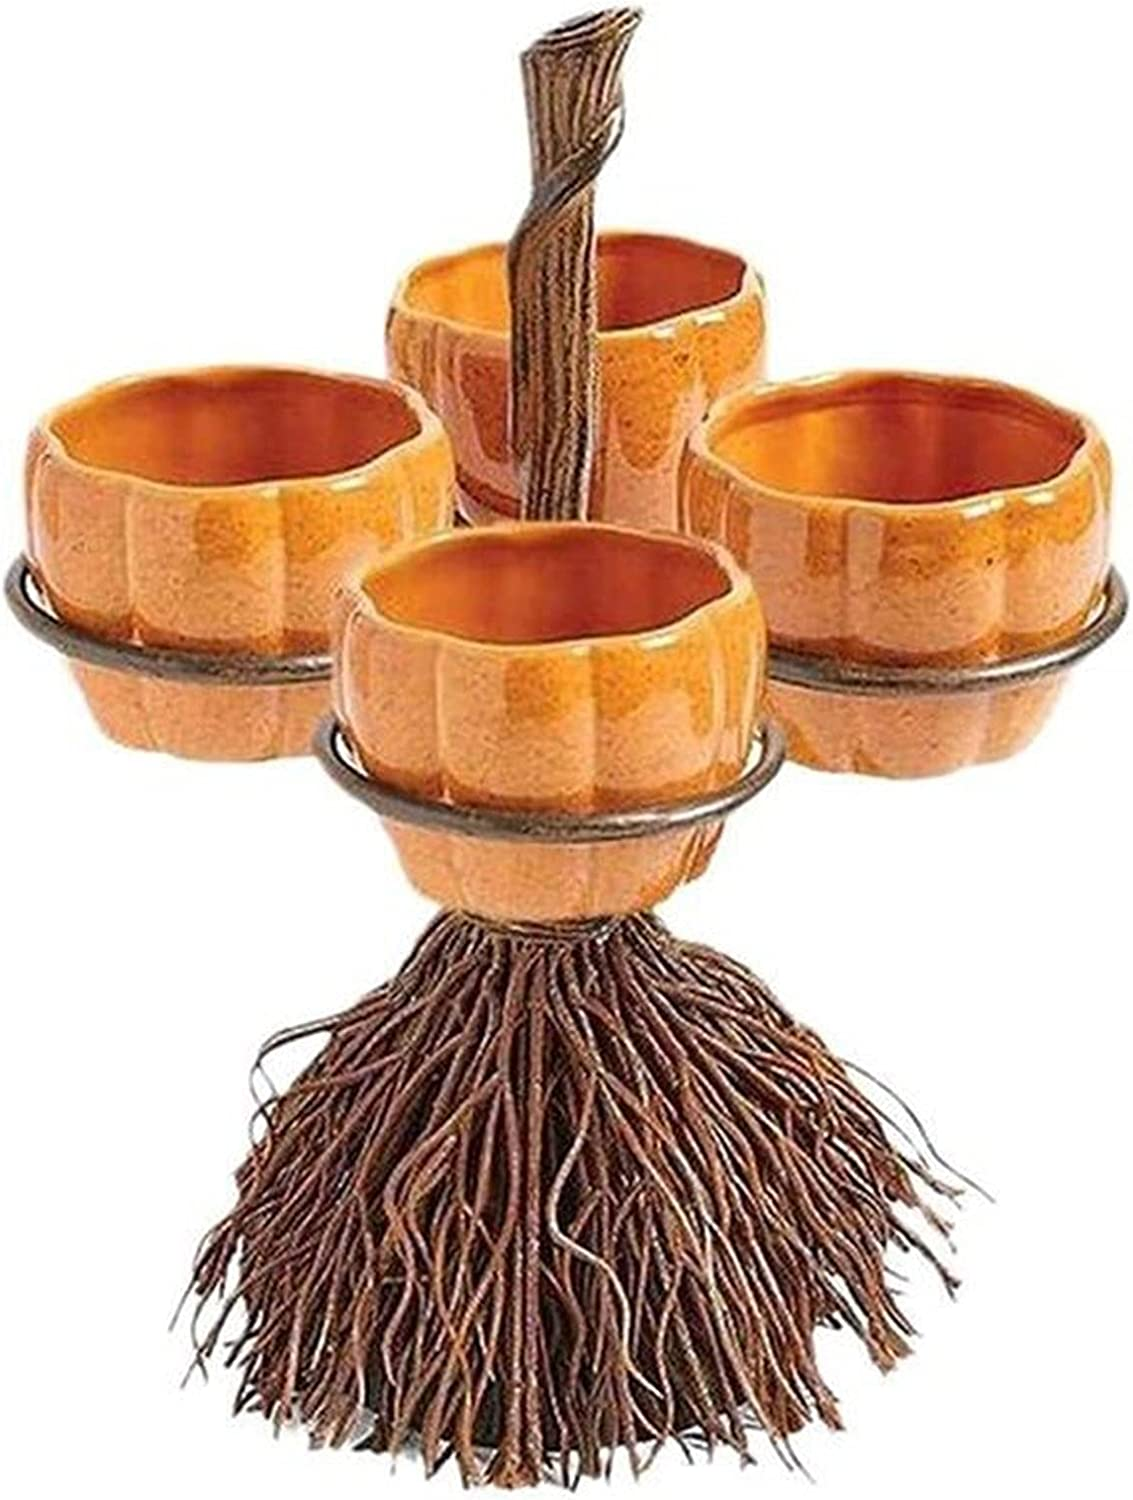 TIANLILI Challenge the lowest price of Choice Japan Creative Pumpkin Snack Bowl Party Stand Theme Halloween